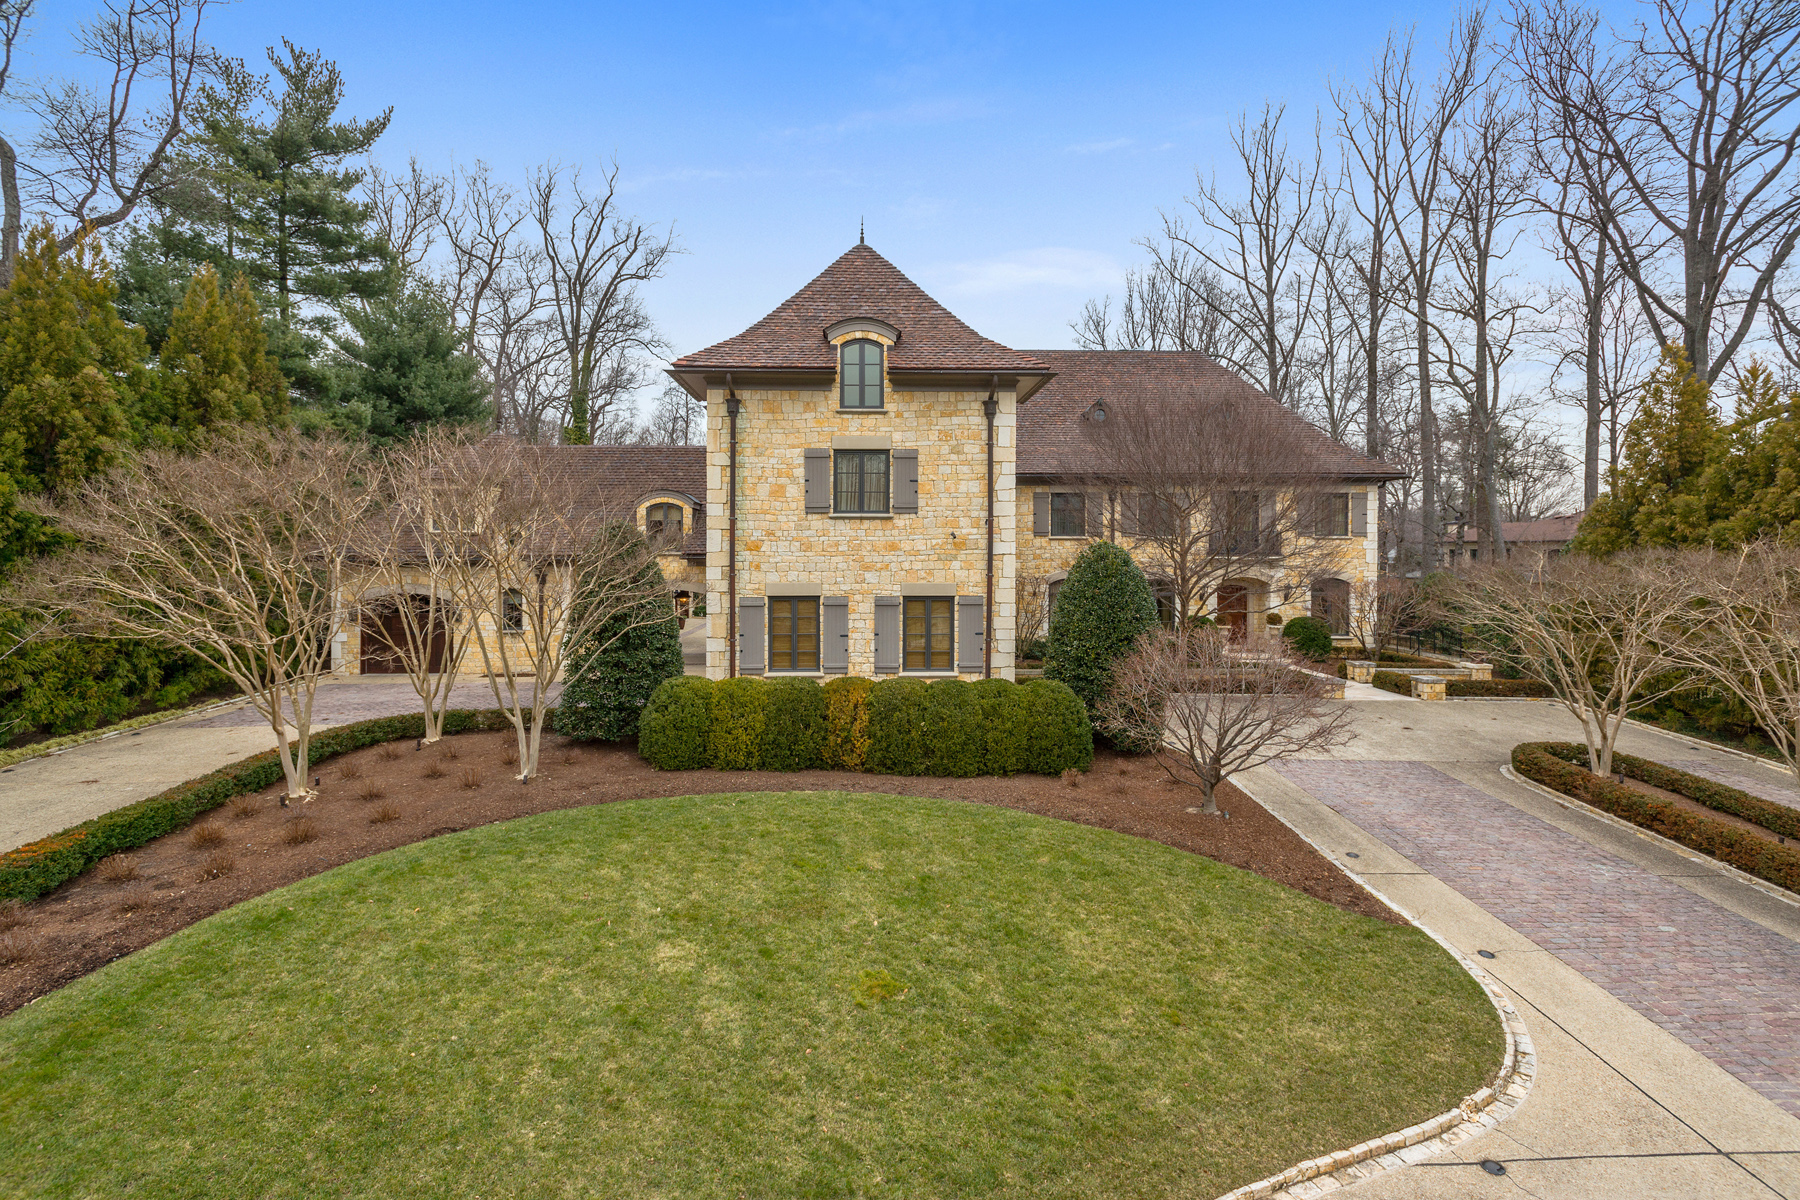 Additional photo for property listing at 5517 Pembroke Road, Bethesda 5517 Pembroke Rd Bethesda, Maryland 20817 United States